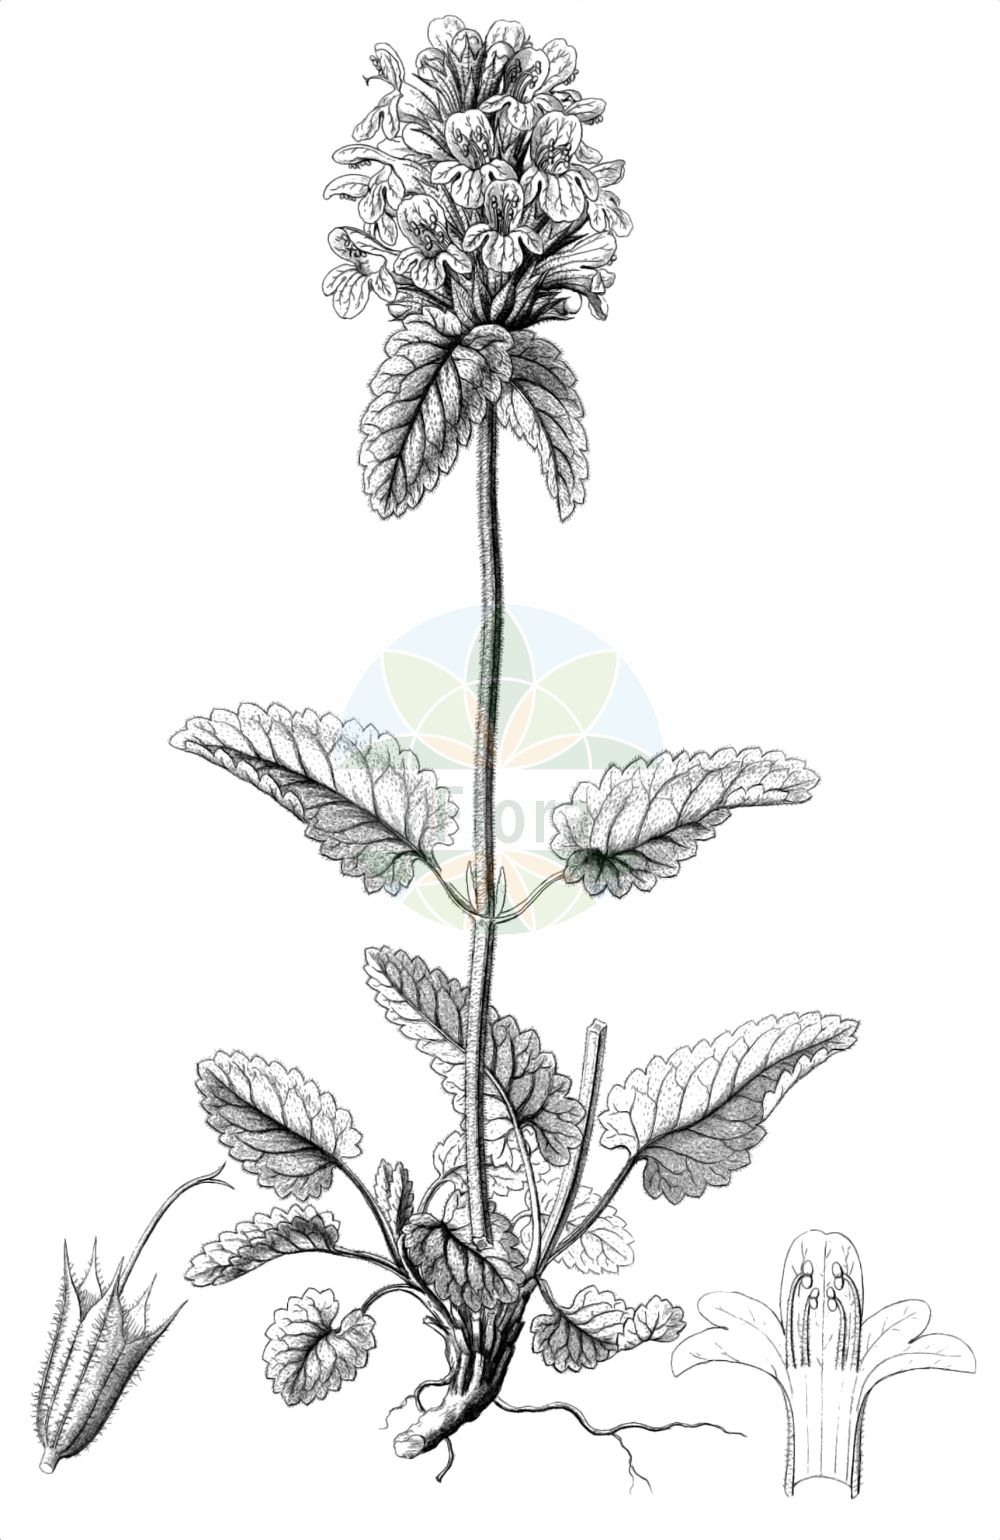 Historische Abbildung von Stachys pradica. Das Bild zeigt Blatt, Bluete, Frucht und Same. ---- Historical Drawing of Stachys pradica.The image is showing leaf, flower, fruit and seed.(Stachys pradica,Betonica alpestris,Betonica pradica,Betonica rubicunda,Stachys densiflora,Stachys hirsuta,Stachys pradica,Betonica densiflora,Stachys,Ziest,Hedgenettle,Lamiaceae,Lippenbluetengewaechse,Lippenbluetler,Nettle family,Blatt,Bluete,Frucht,Same,leaf,flower,fruit,seed,Reichenbach (1823-1832))